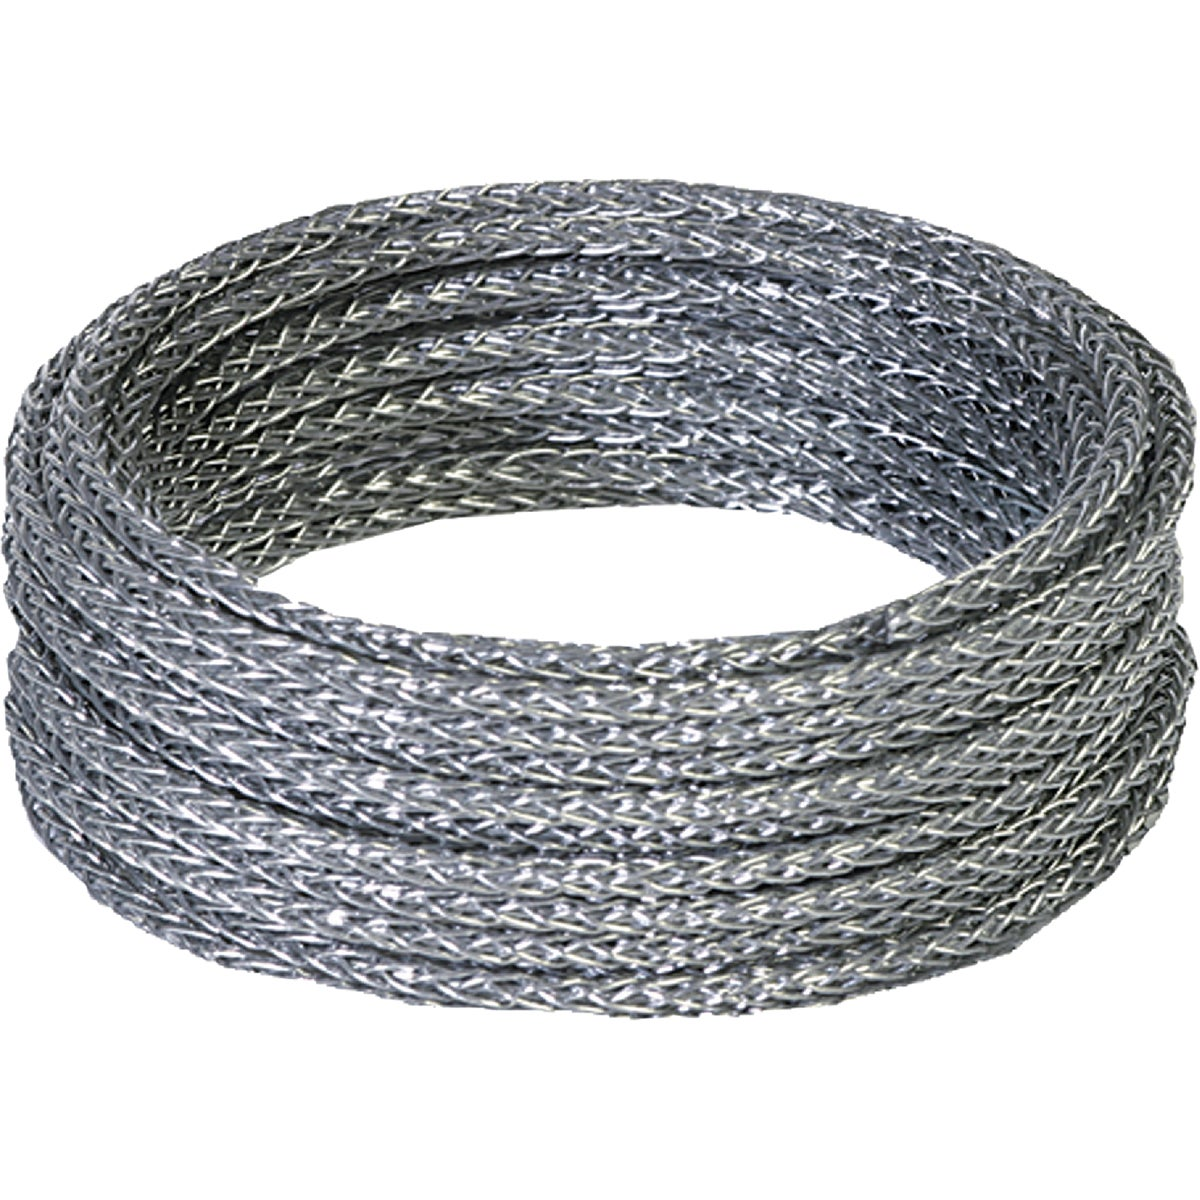 25' PICTURE WIRE - 121110 by Hillman Fastener